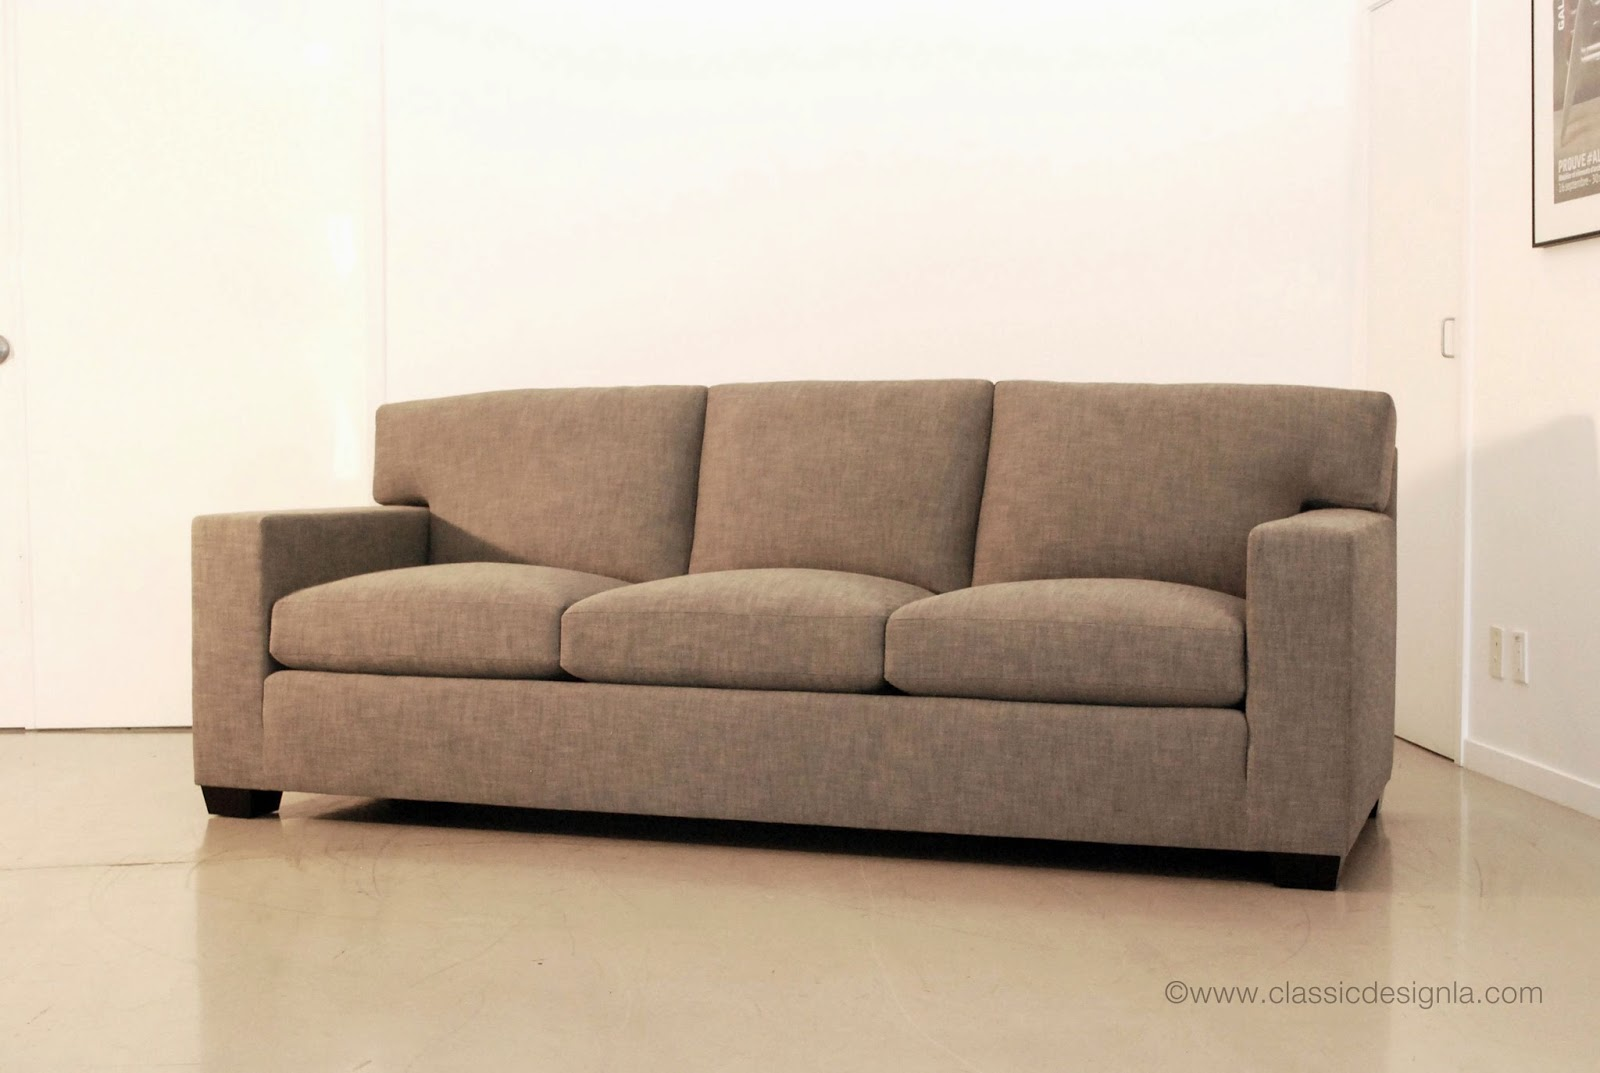 Jean Michel Frank Sofa Series